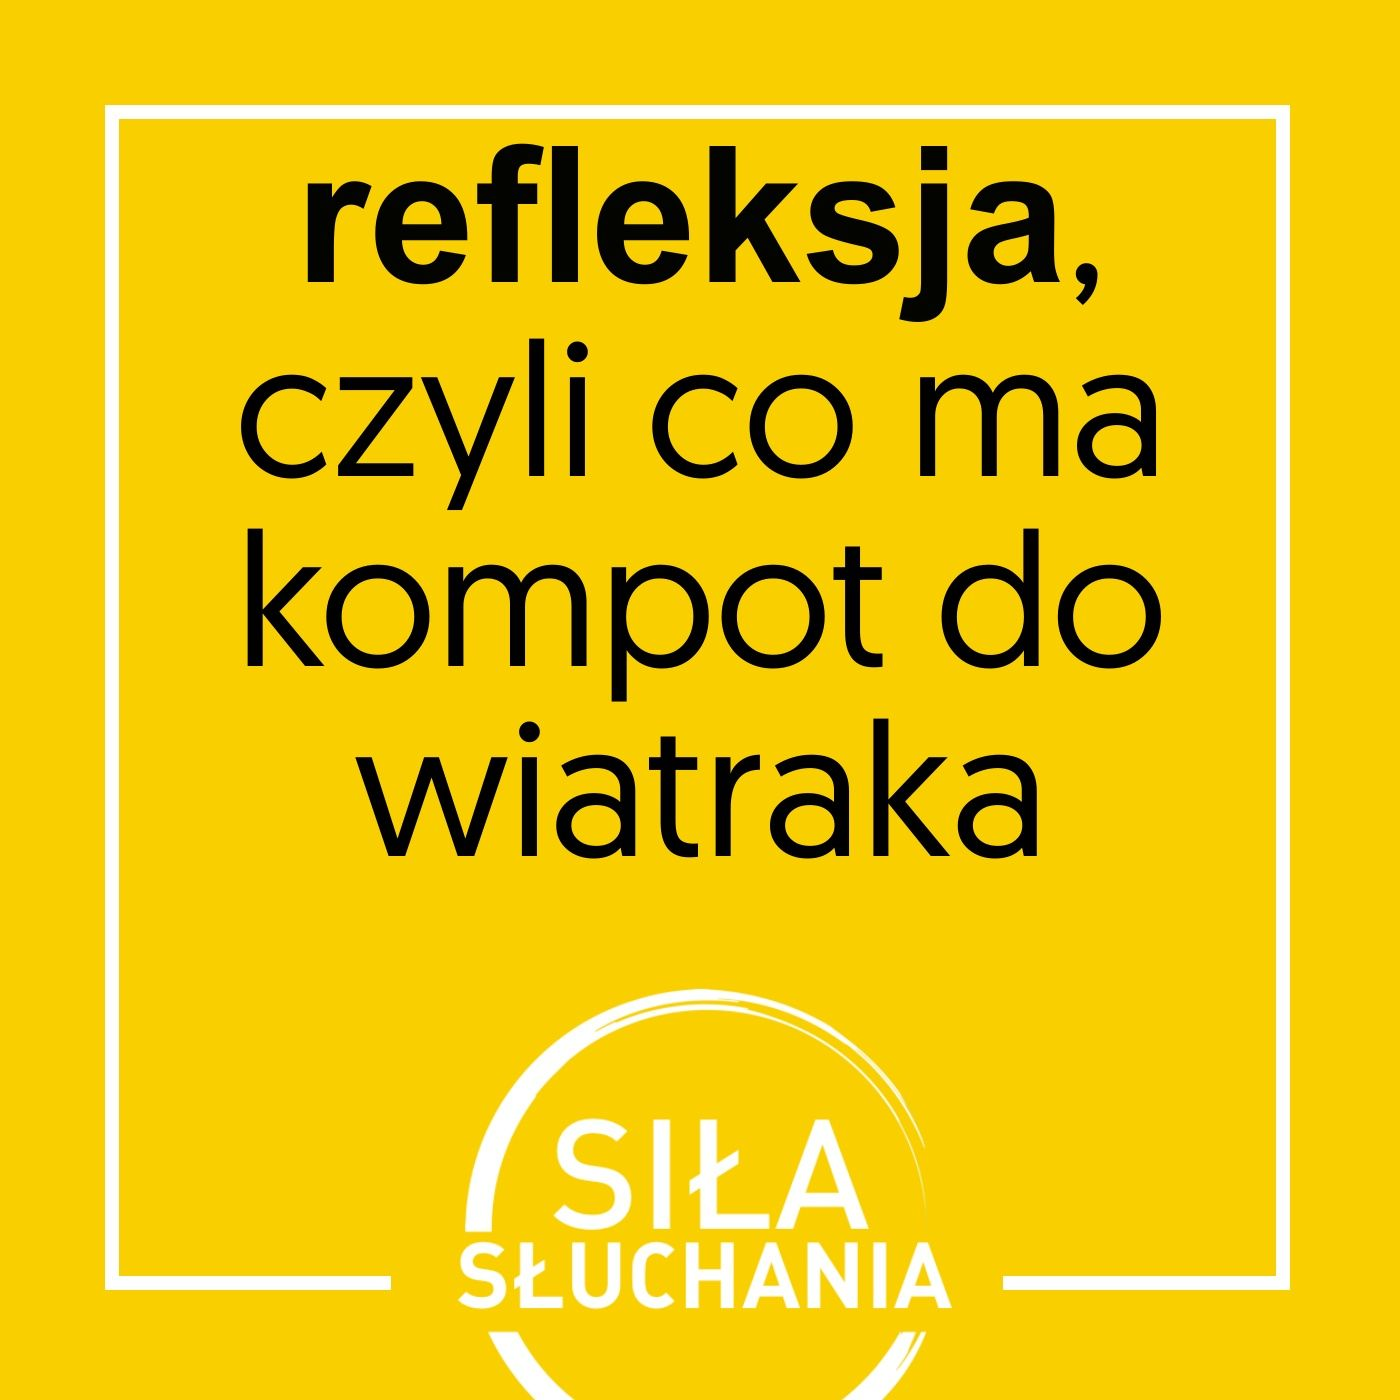 Refleksja, czyli co ma kompot do wiatraka